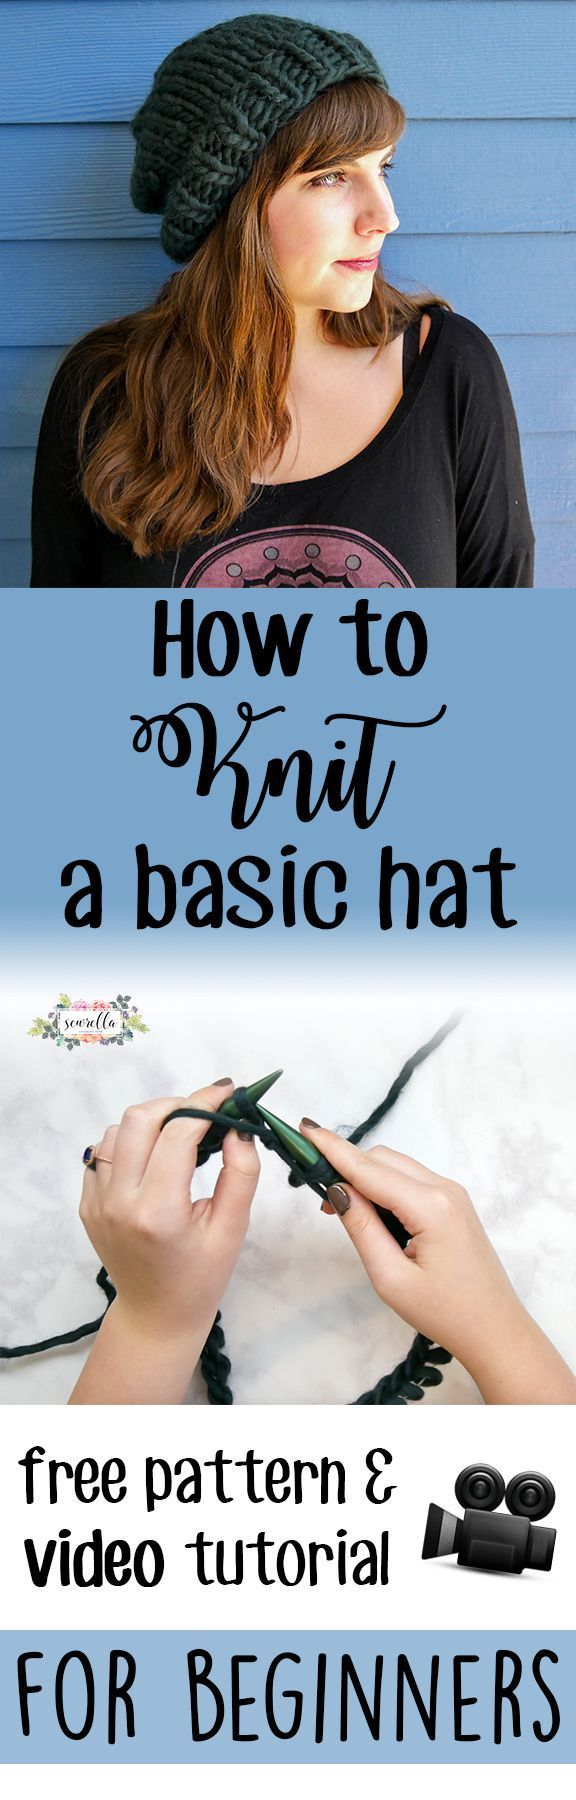 Learn to knit a basic hat or beanie for beginners in my new video tutorial and free written pattern! All you need to know are knit and purl. This project works up fast and is so easy!